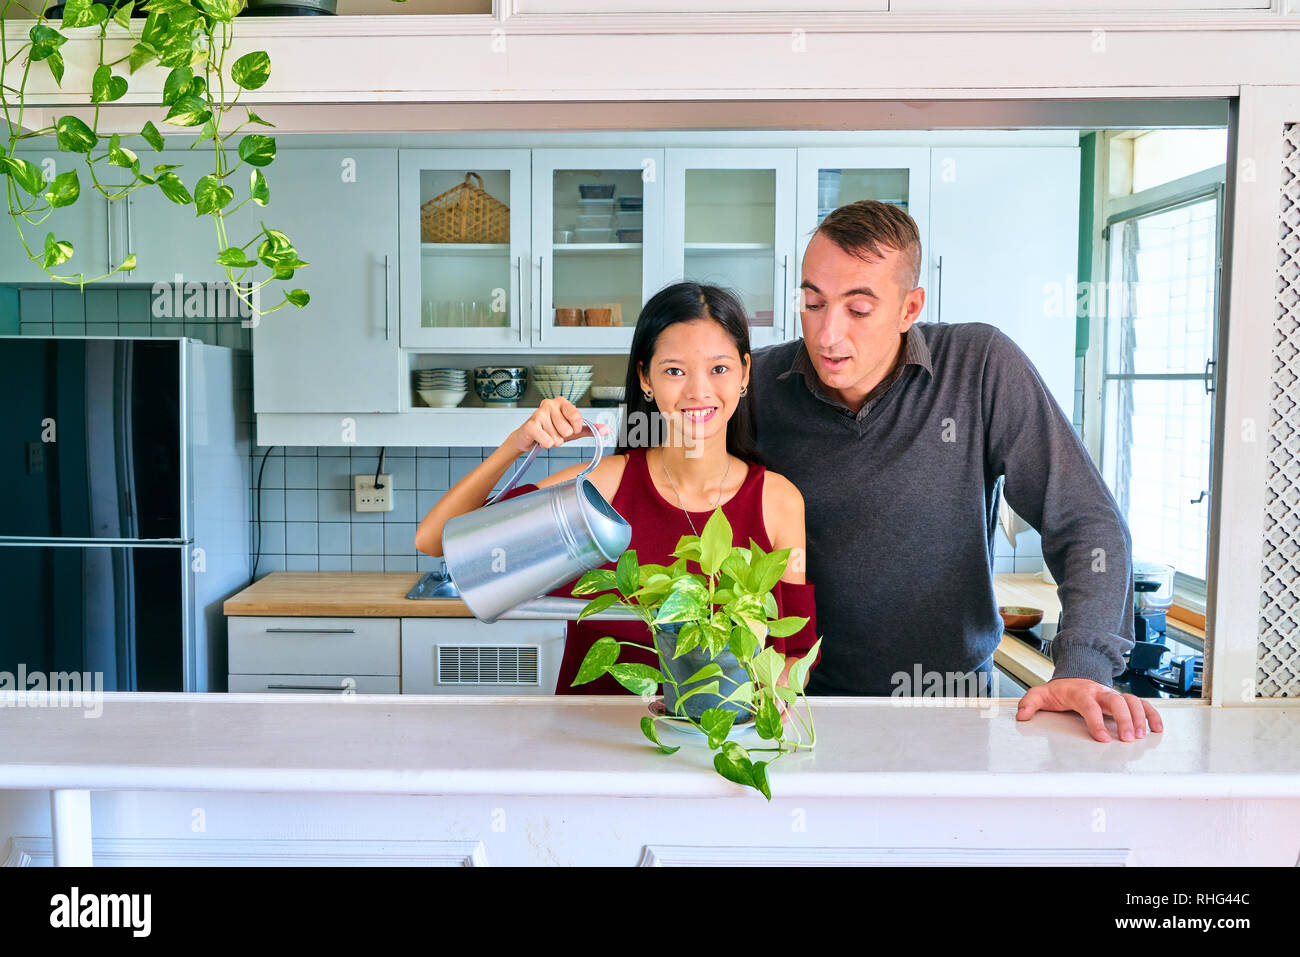 Lovely couple posing - watering plants and looking at camera - Stock Image